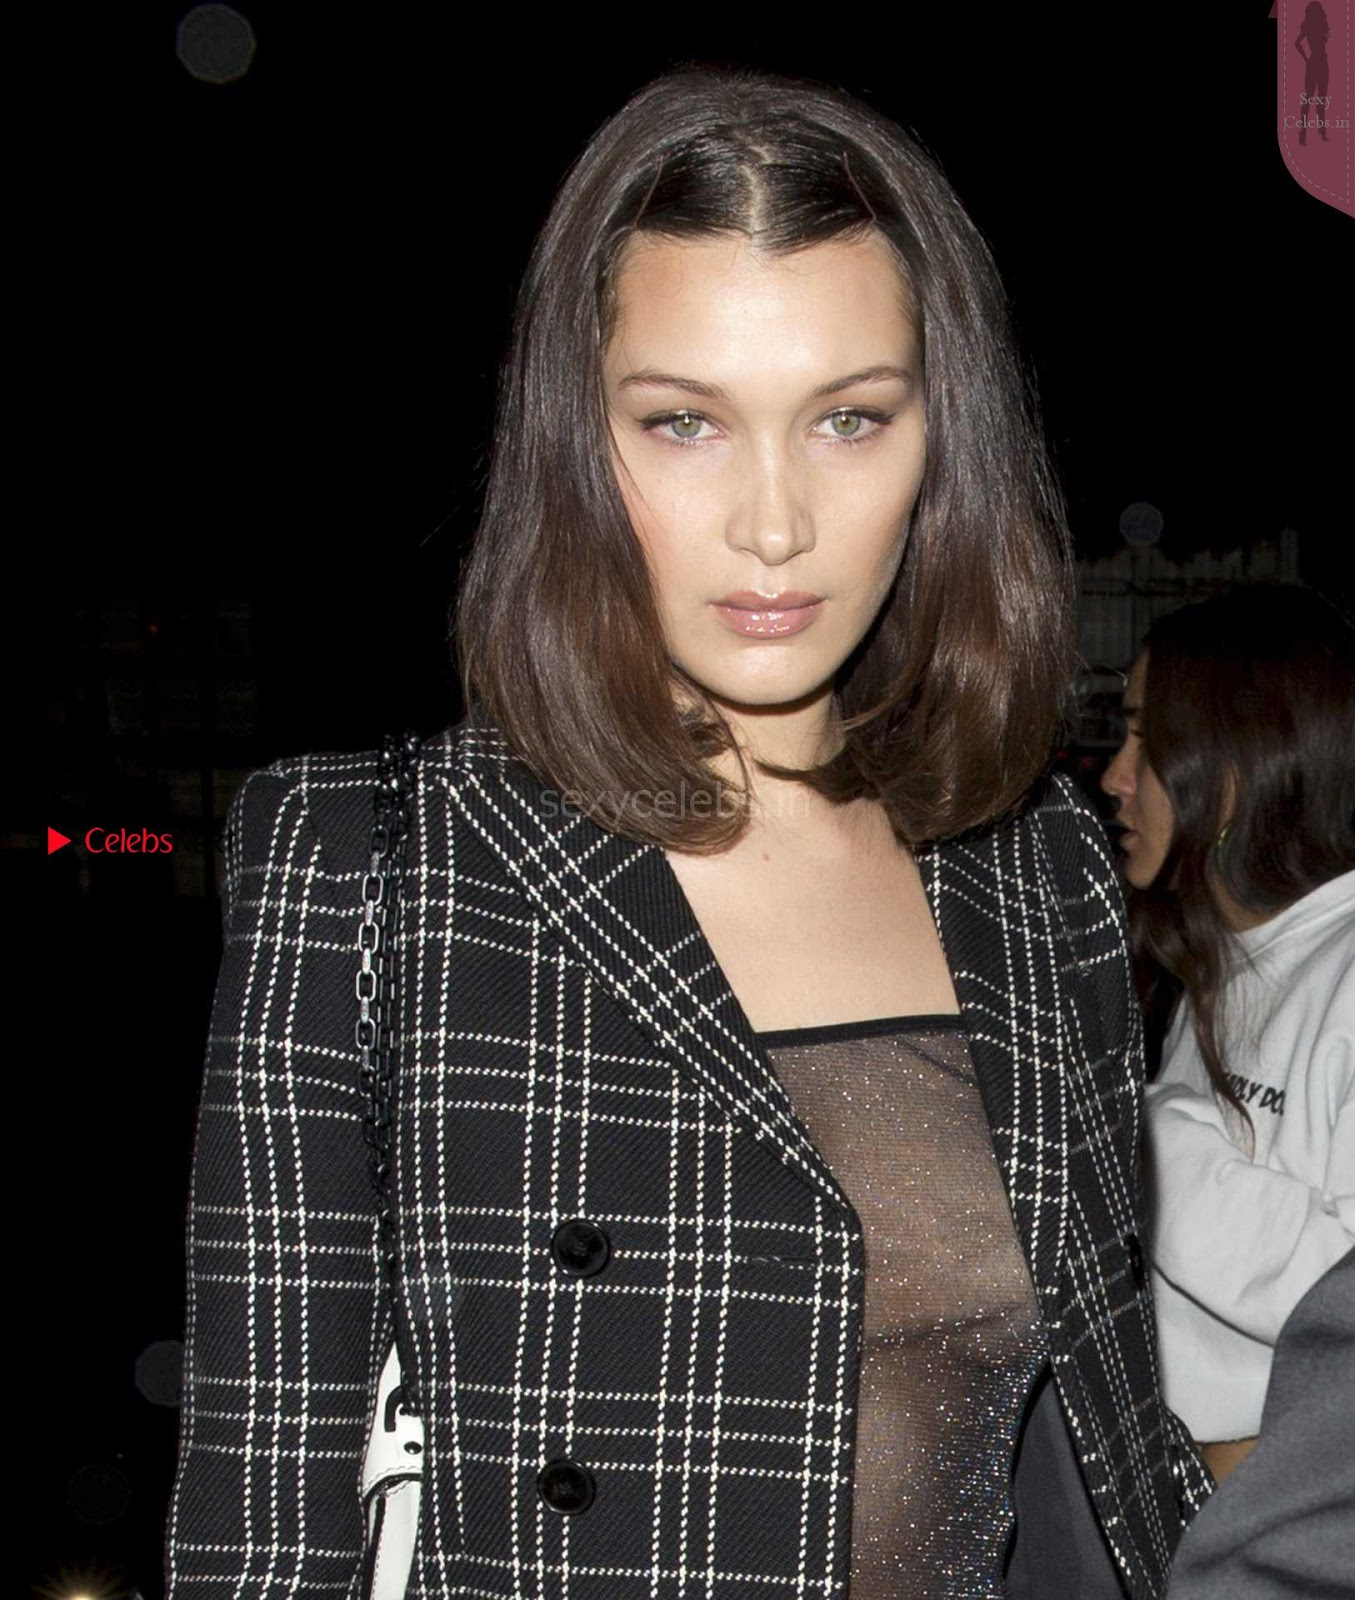 Bella Hadid Showing off her tits in transparent top in Dubai  ~ SexyCelebs.in Exclusive